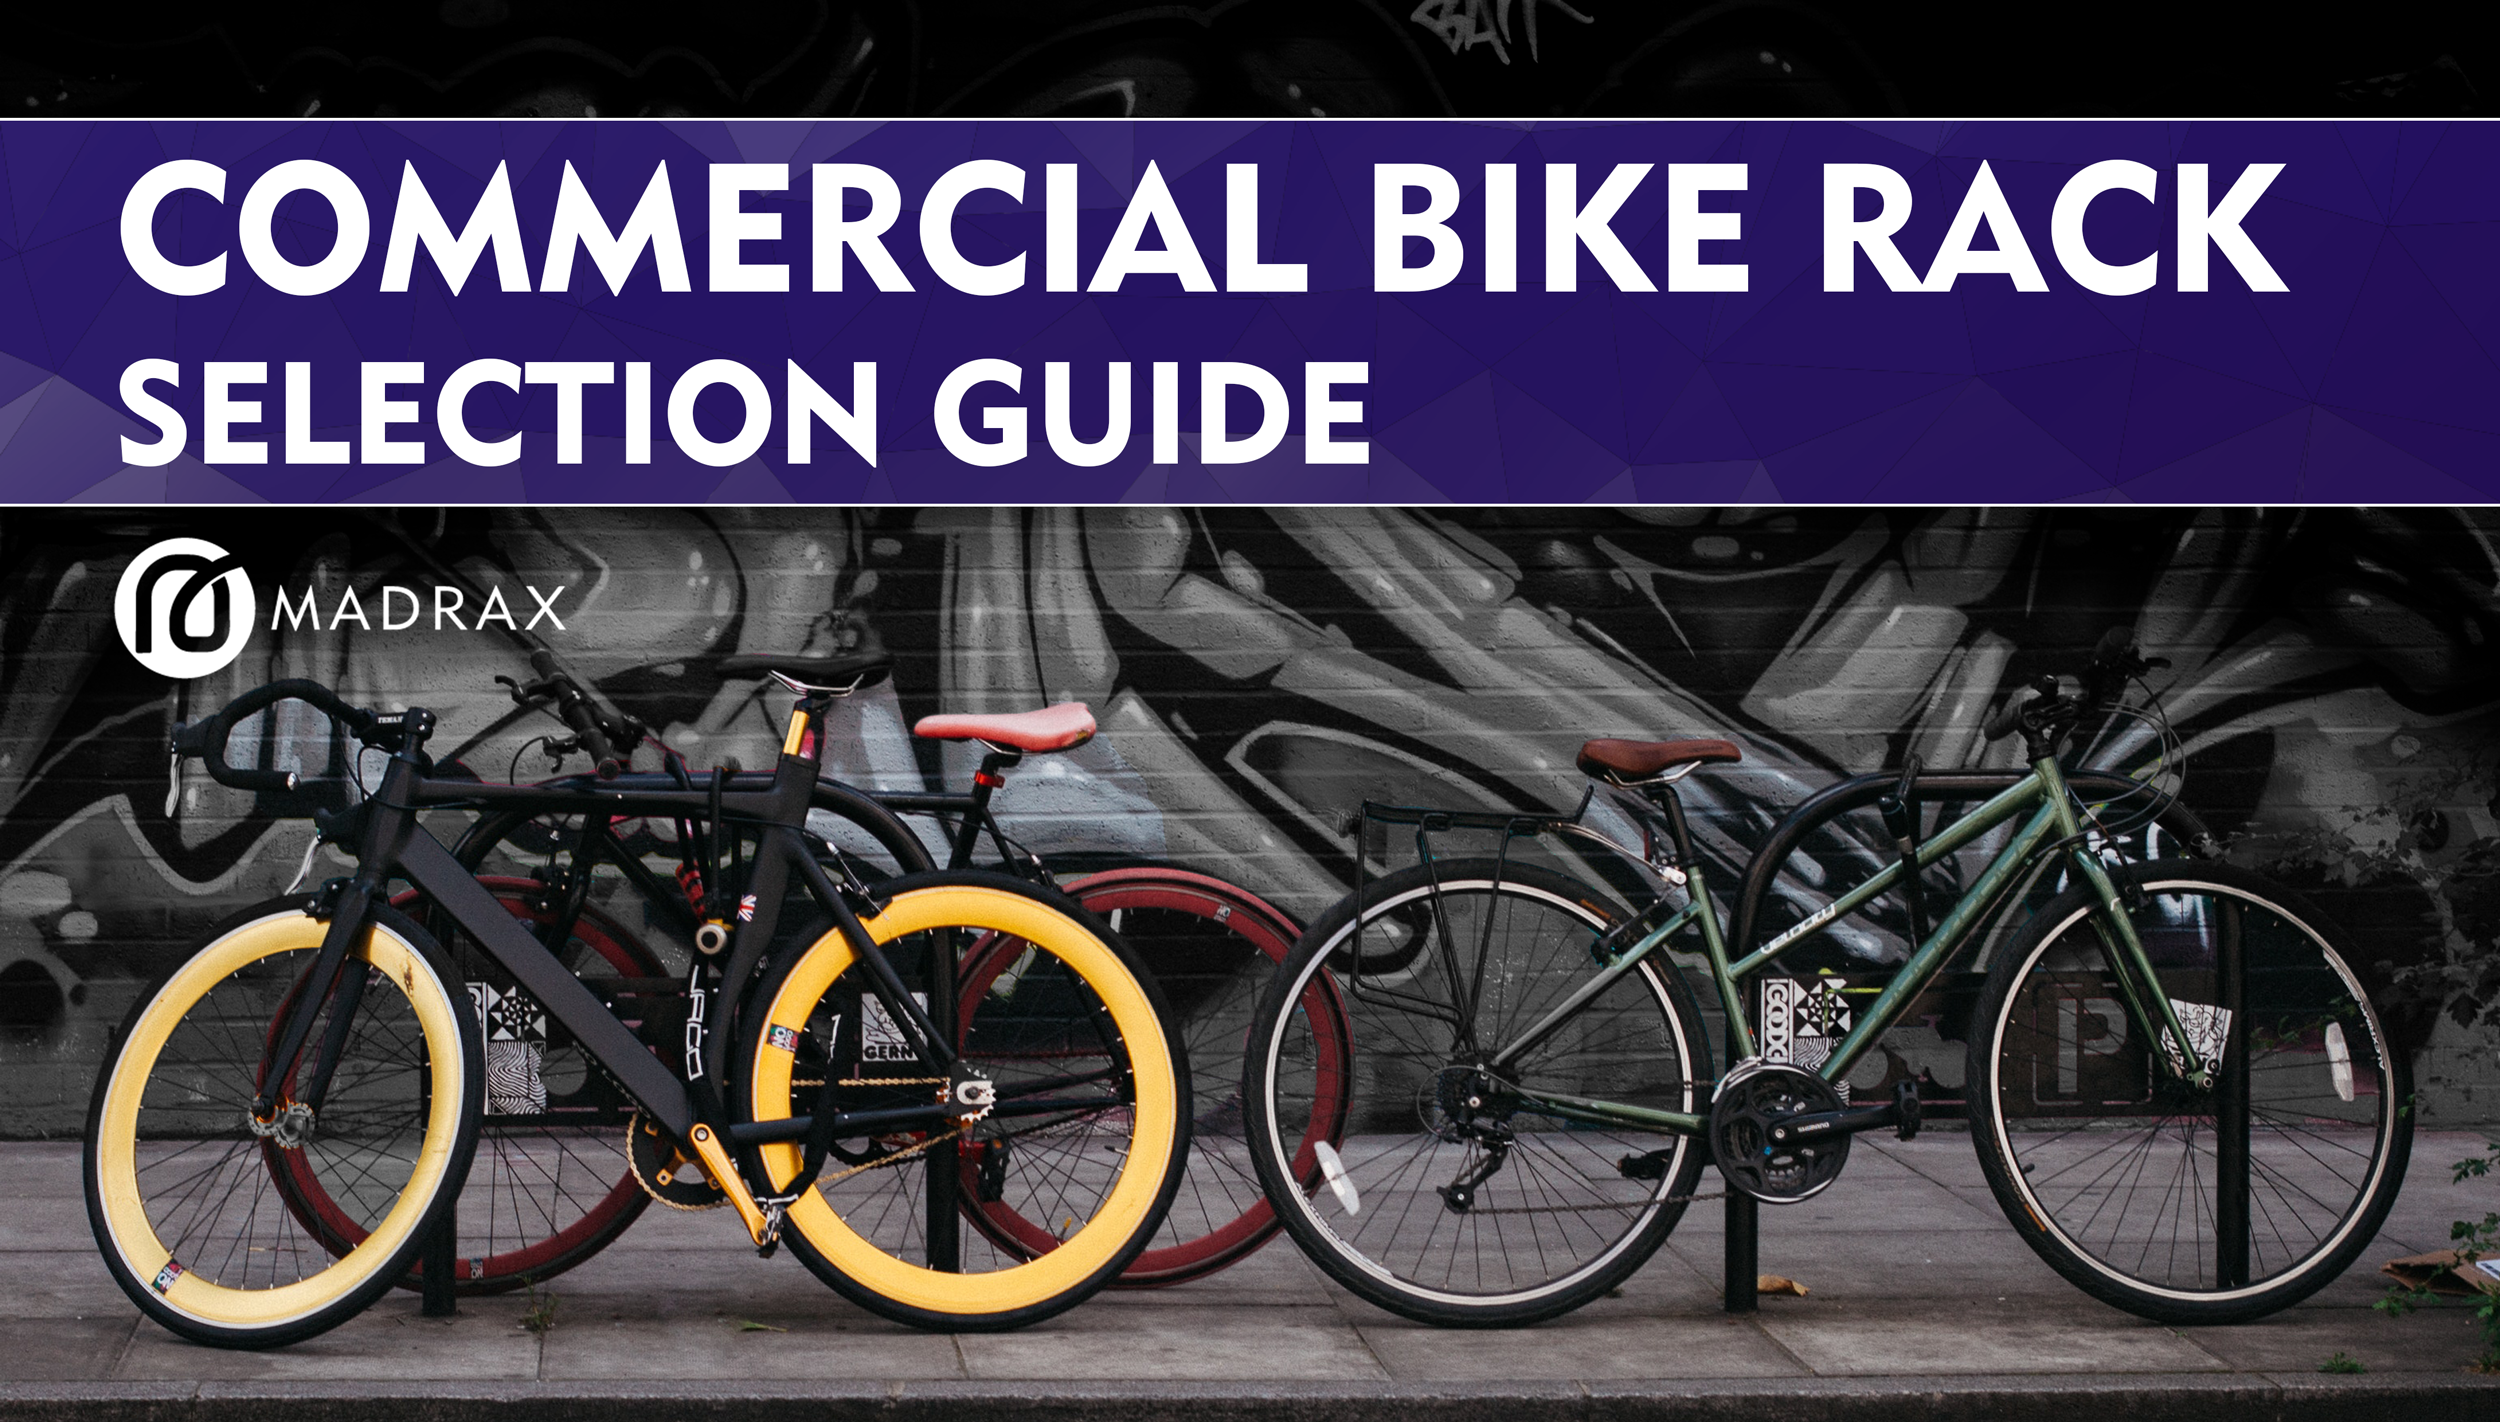 Bike-Rack-Selection-Guide-Primary-Image-2